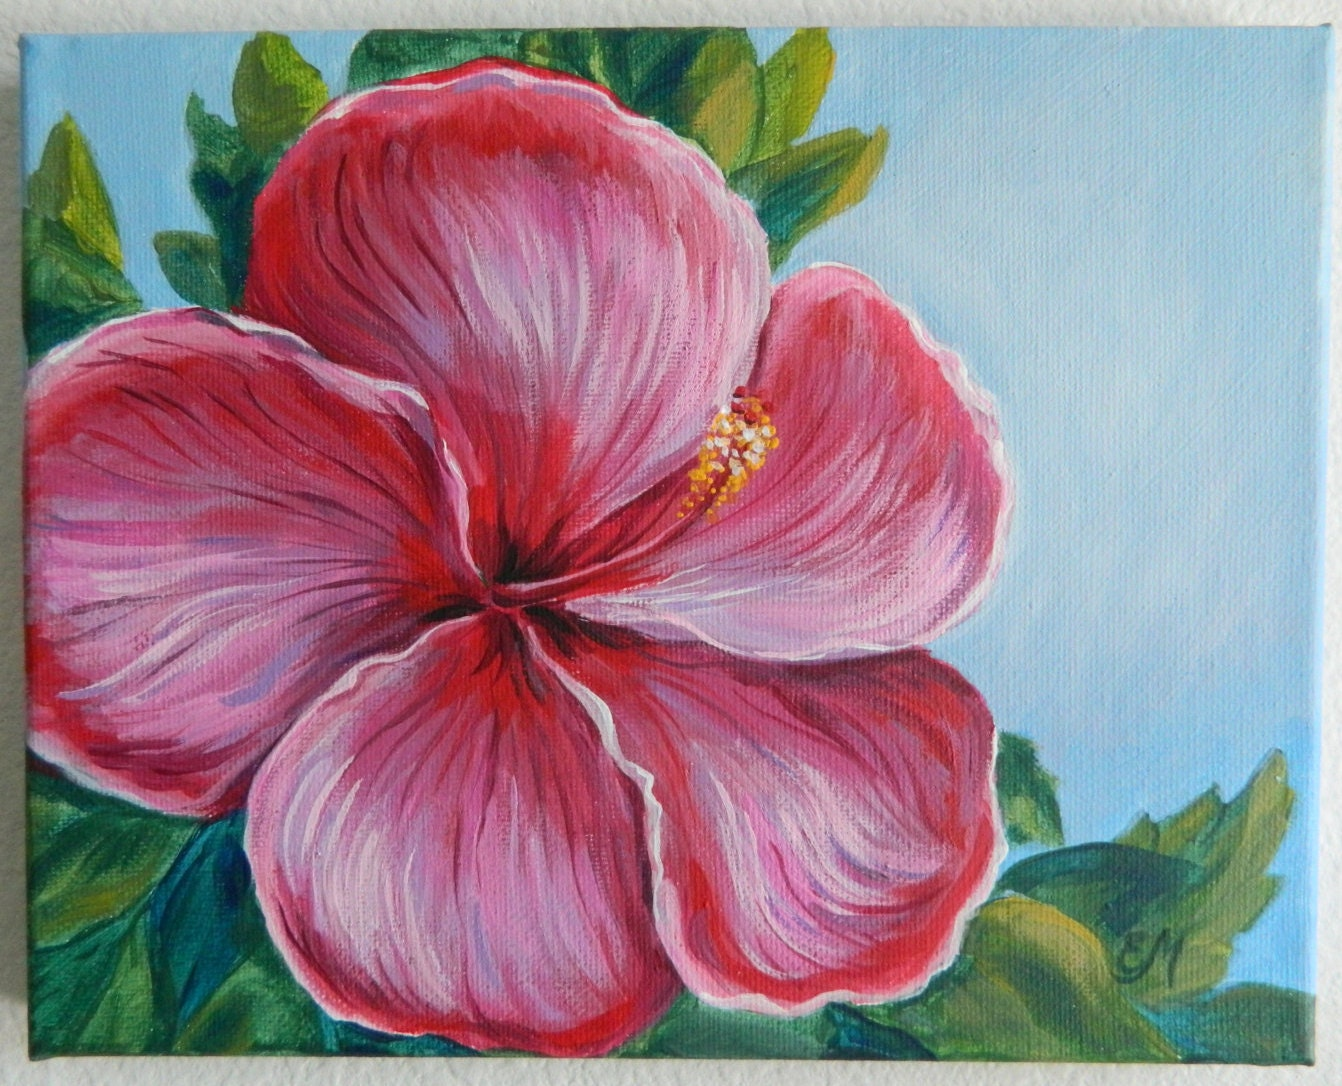 Flower Paintings On Canvas Of Hibiscus Painting Flower Painting Original Flower Painting